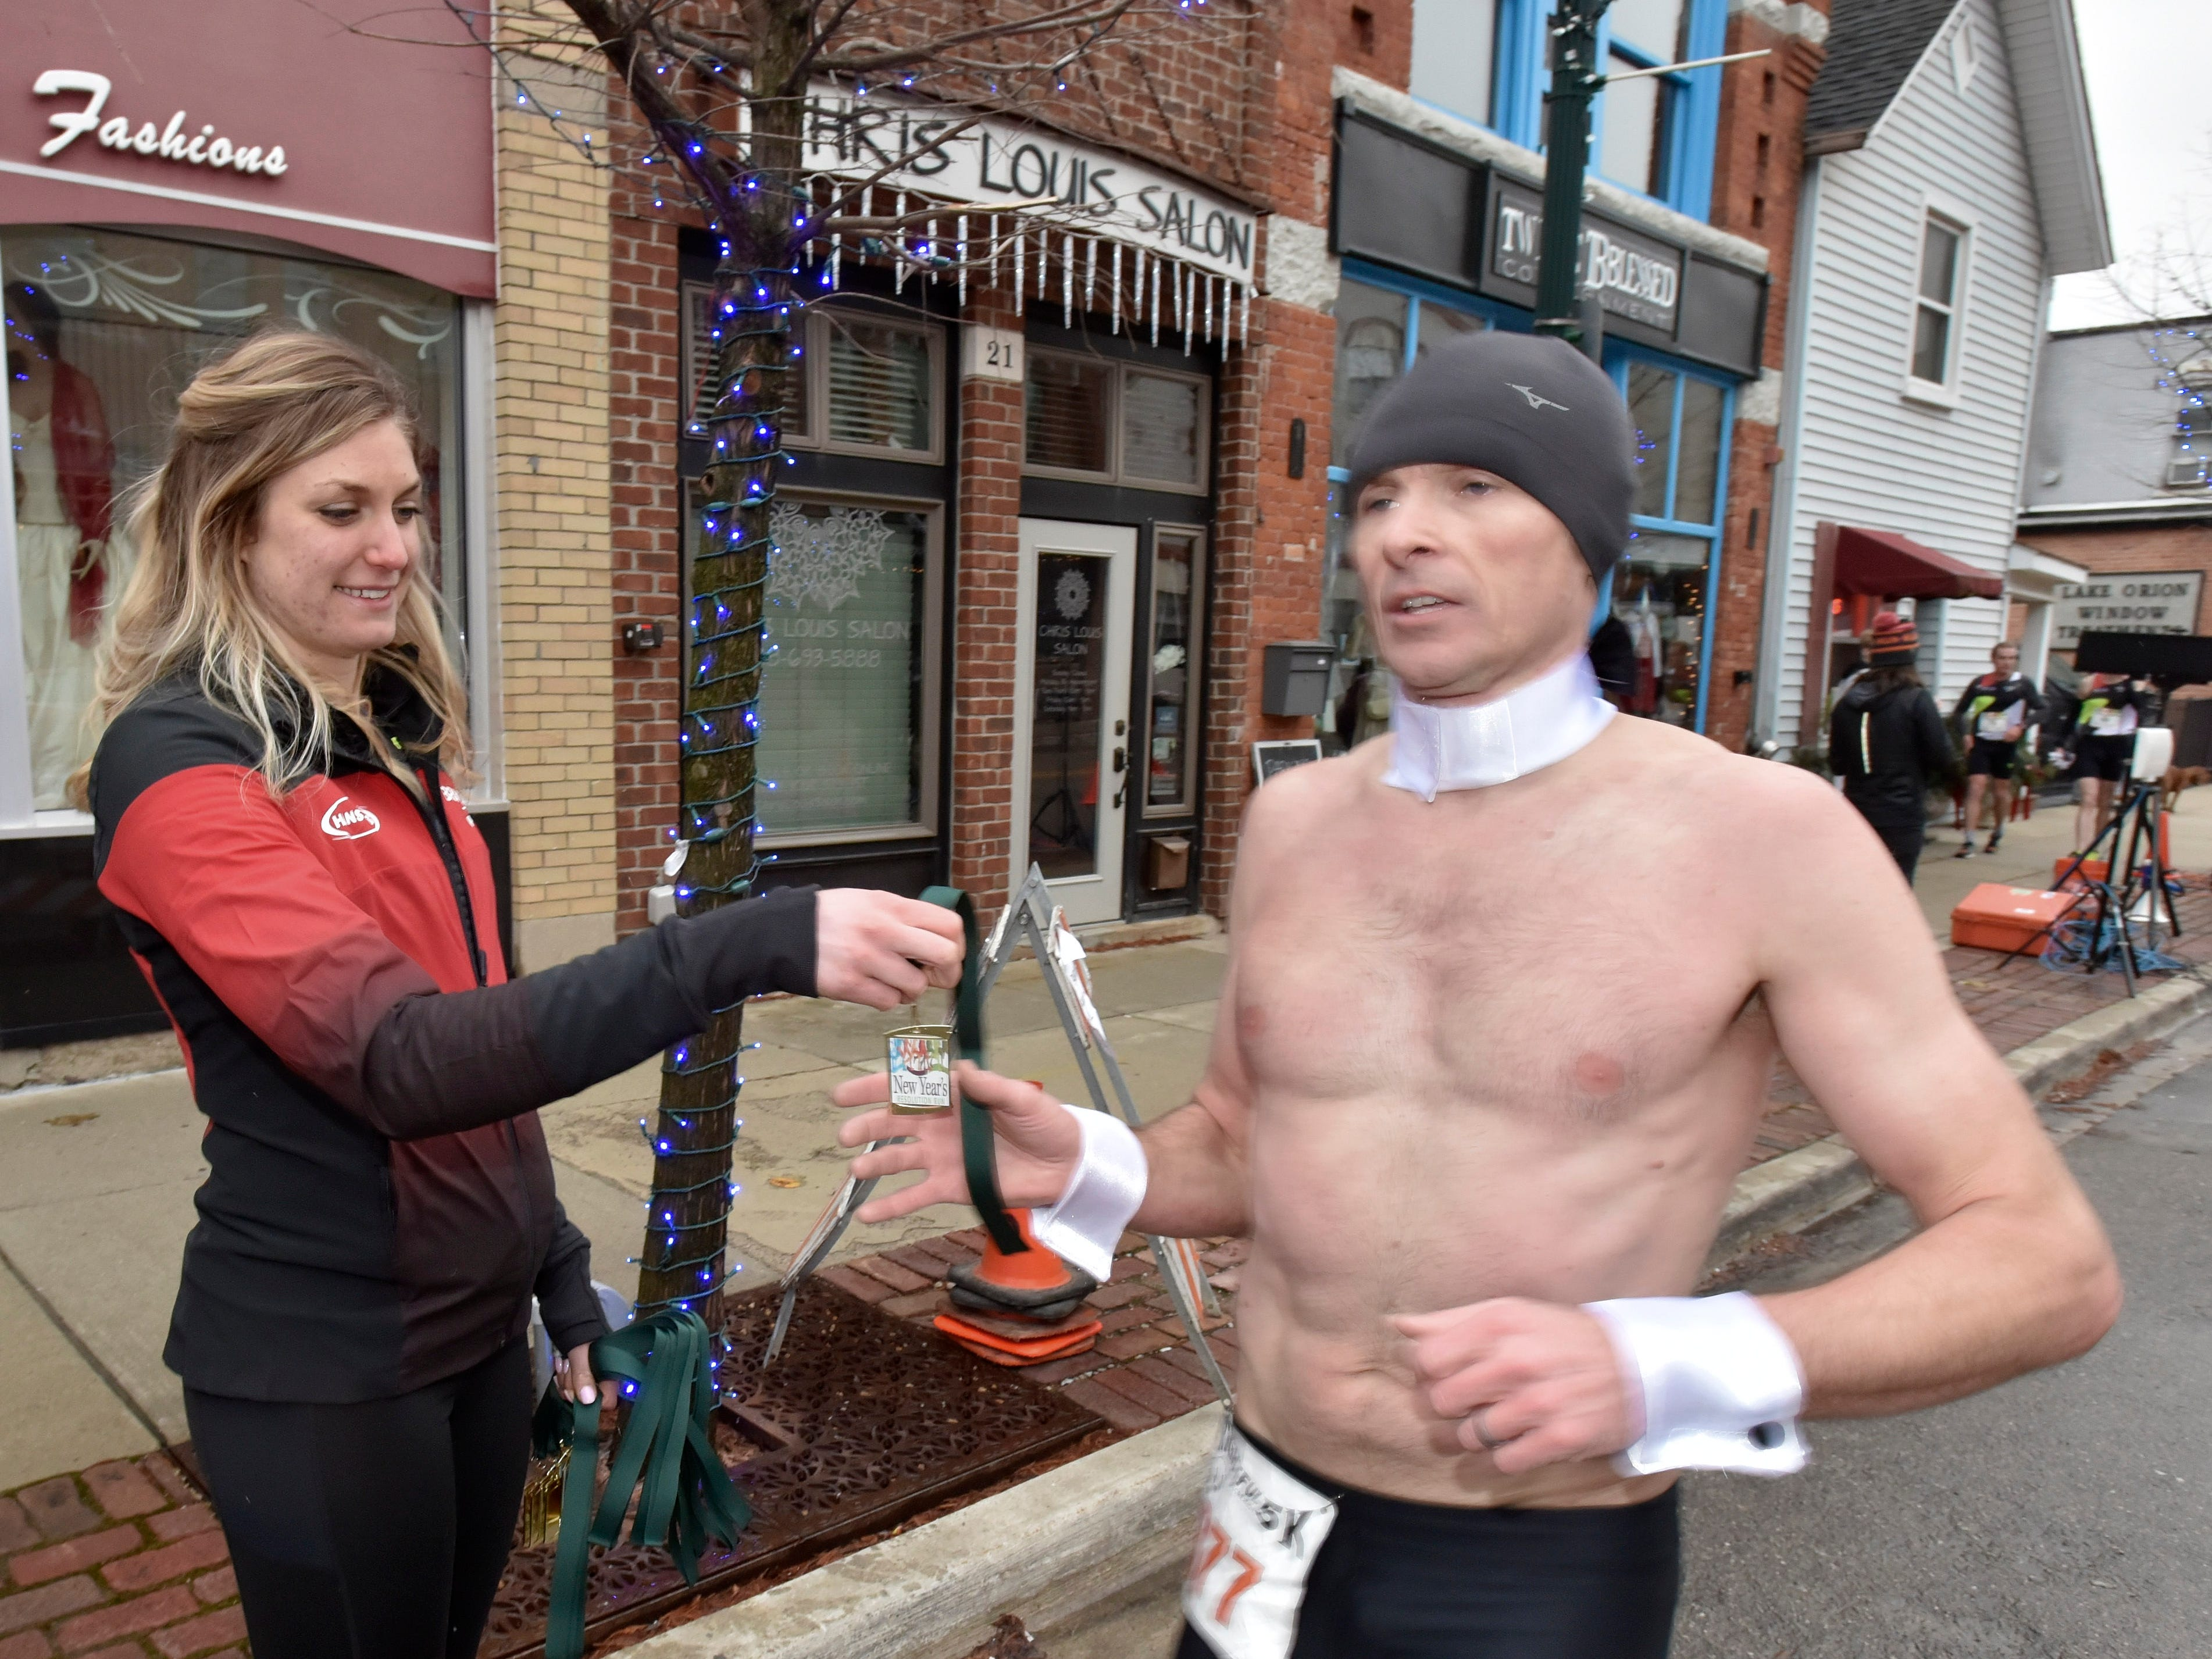 Hansons Brooks Distance Project professional running team member Rachele Schulist, left, of Rochester Hills, hands out a medal to Magic Mike (377) as he places first for males ages 30-39 and 10th overall.